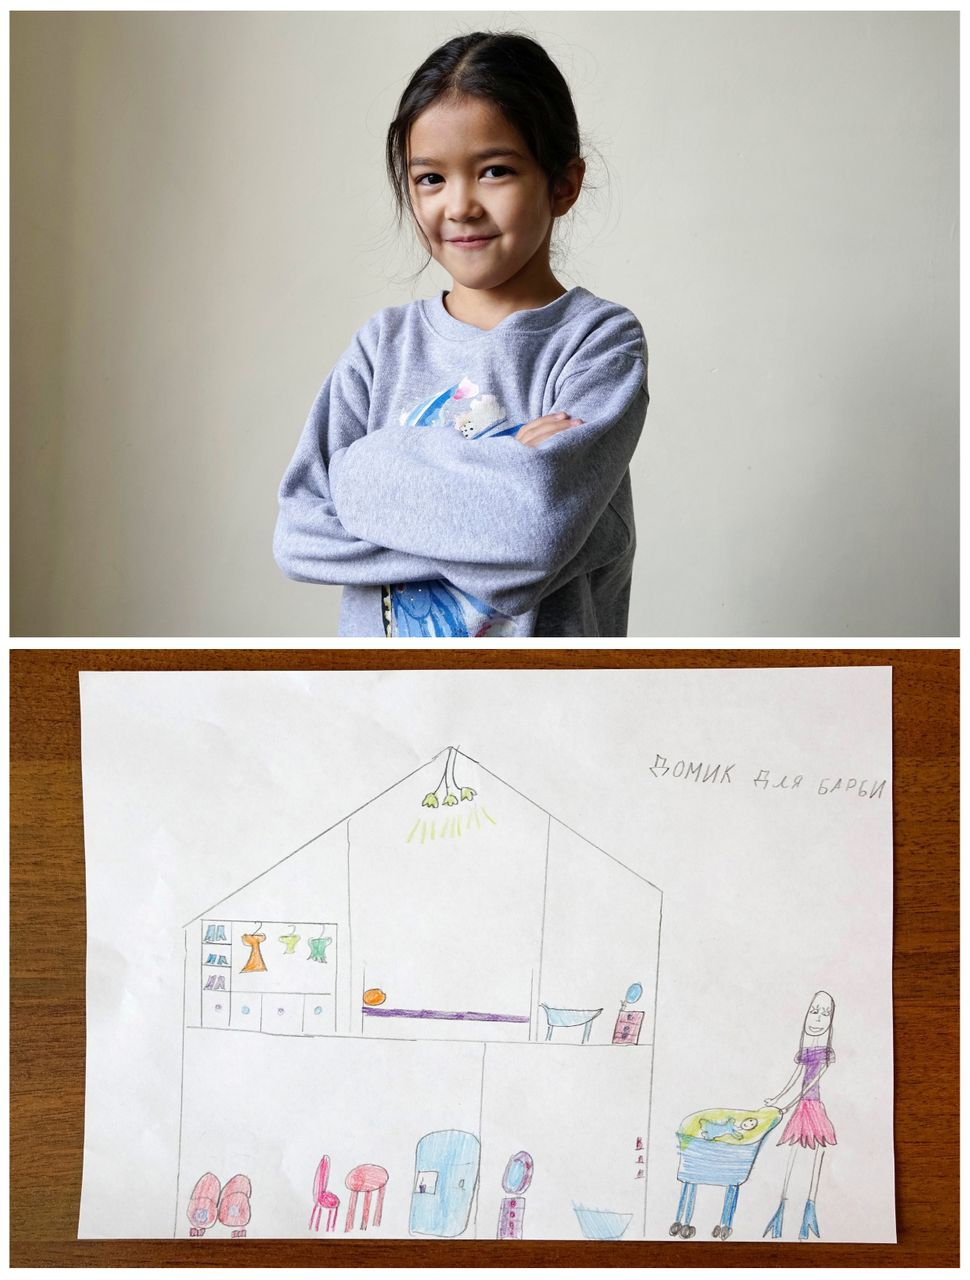 <strong>Adina Serikbayeva, 7, from Almaty, Kazakhstan:</strong> Adina dreams to get a house for her Barbie doll. Wr